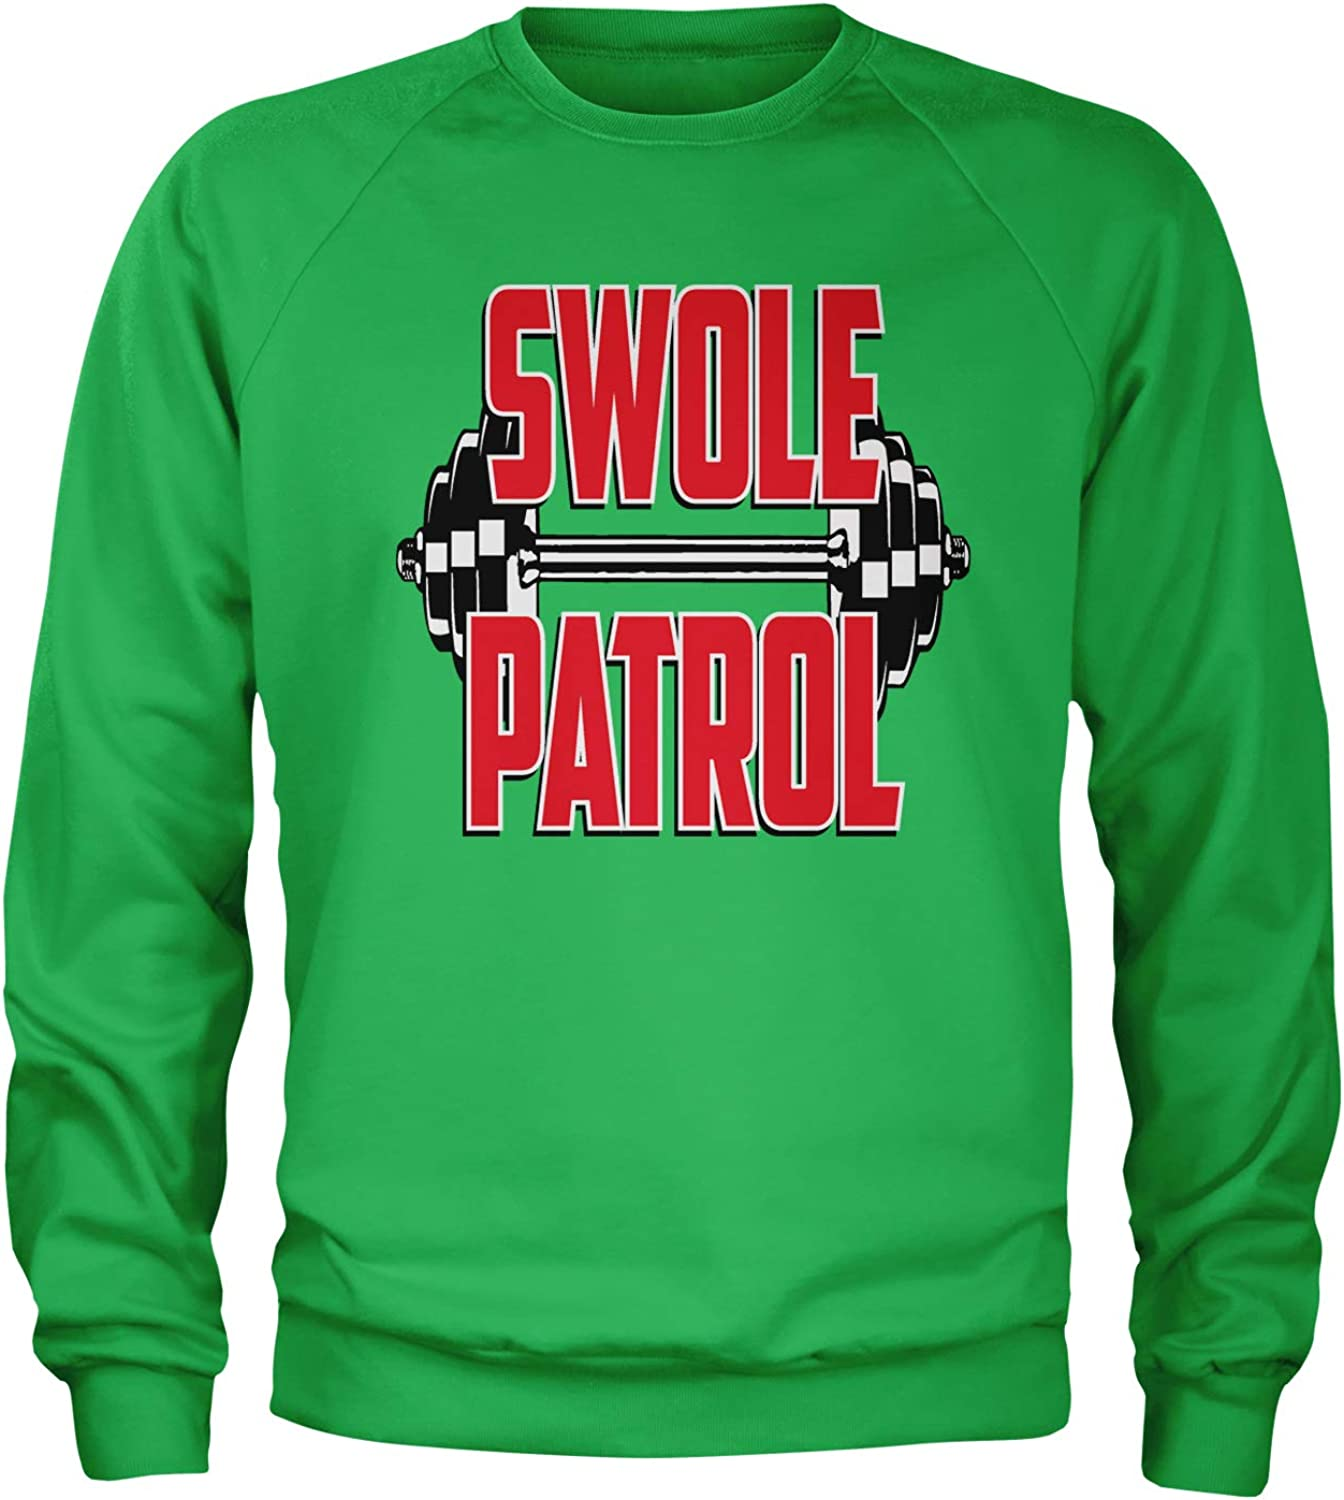 Expression Tees Swole Patrol Weight Lifting Crewneck Sweatshirt